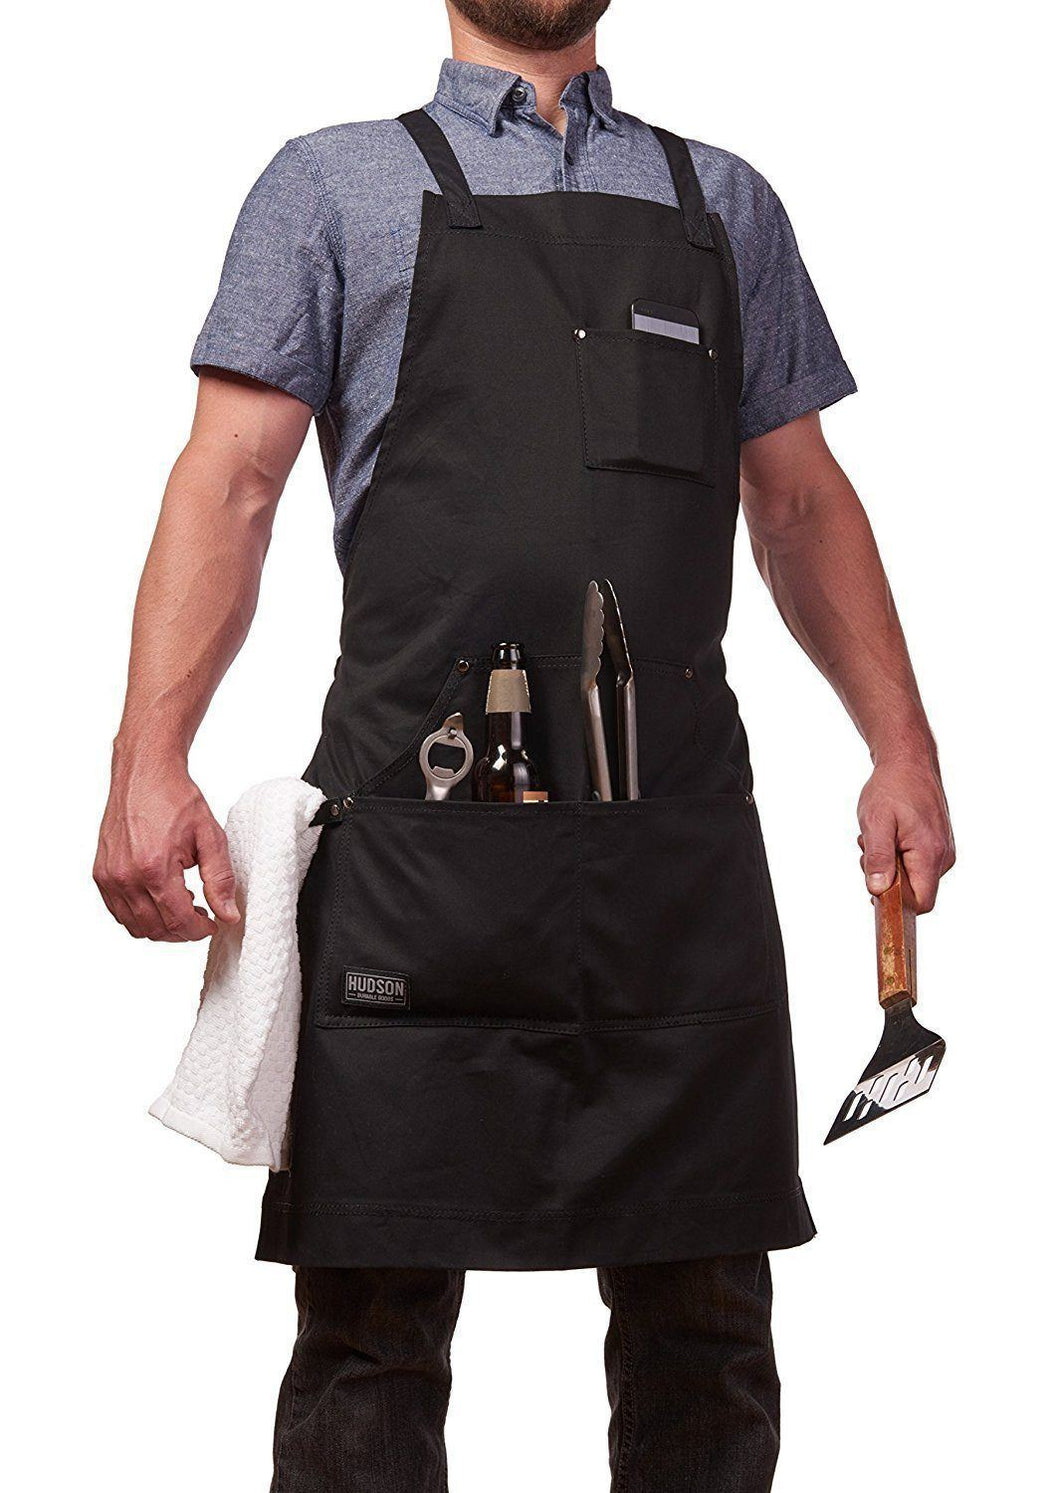 HDG805 - Professional Grade BBQ Apron for Kitchen, Grill, and BBQ ...